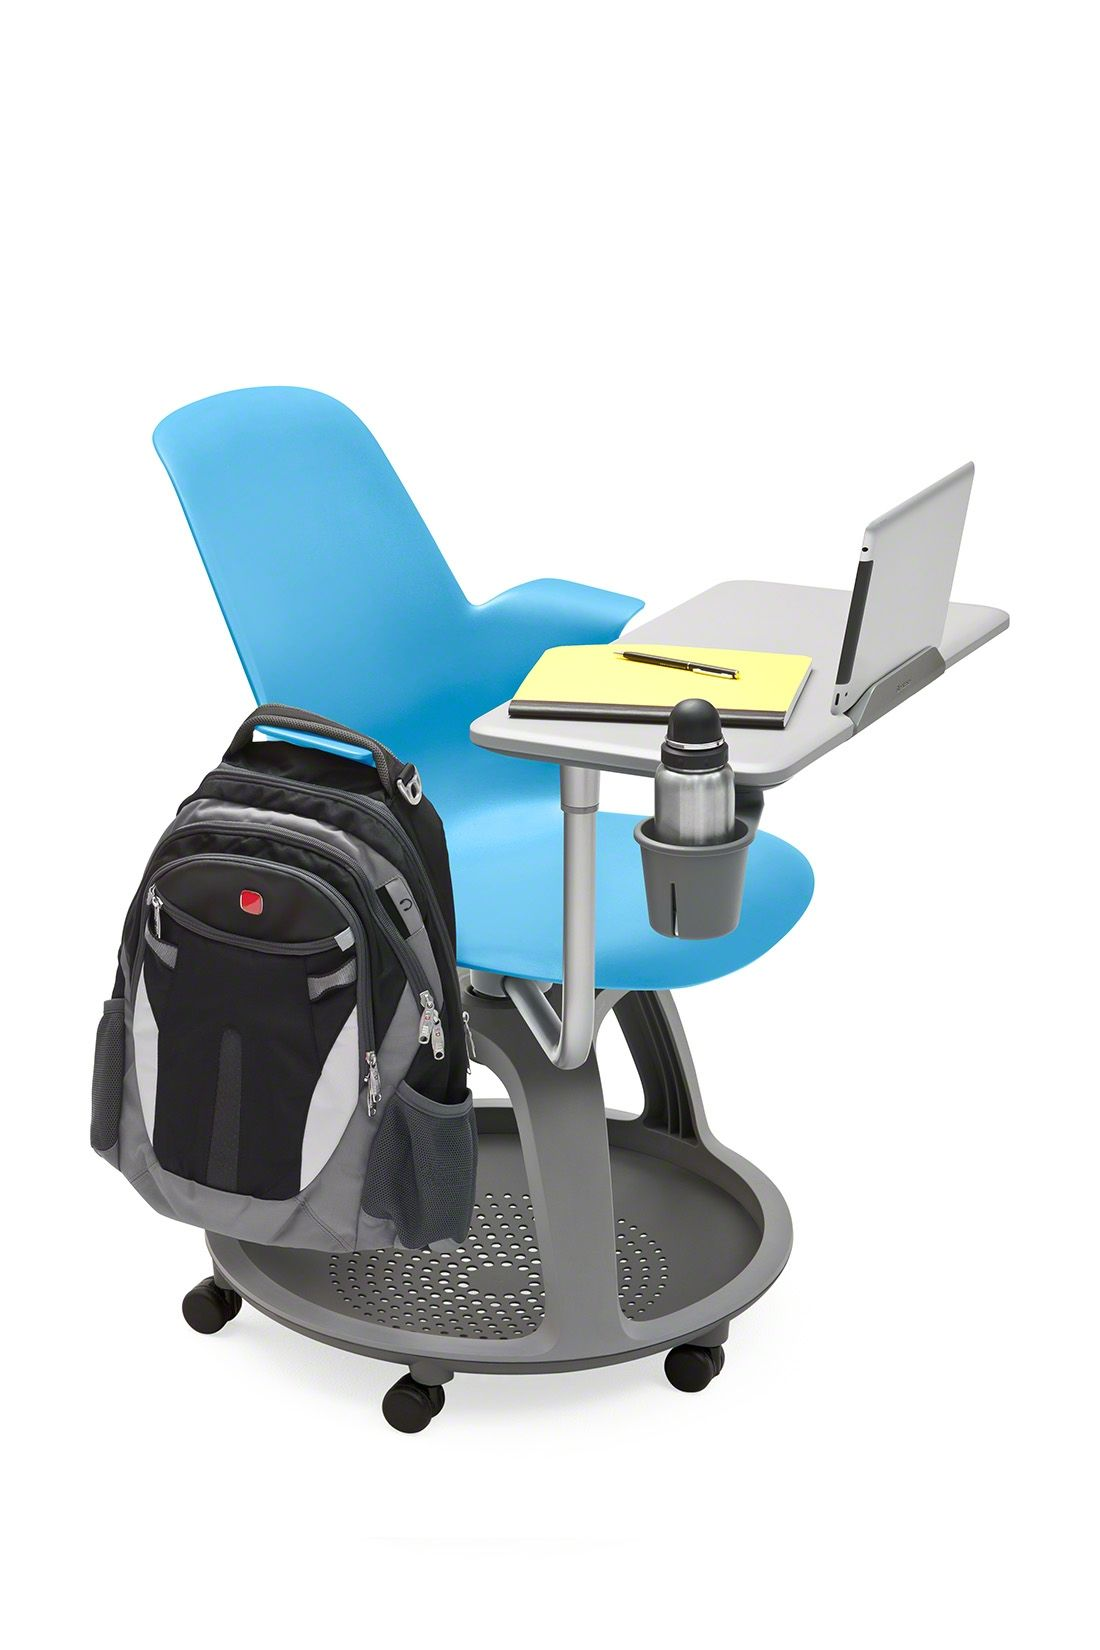 Steelcase Has Just Recently Introduced A Tablet Holder For